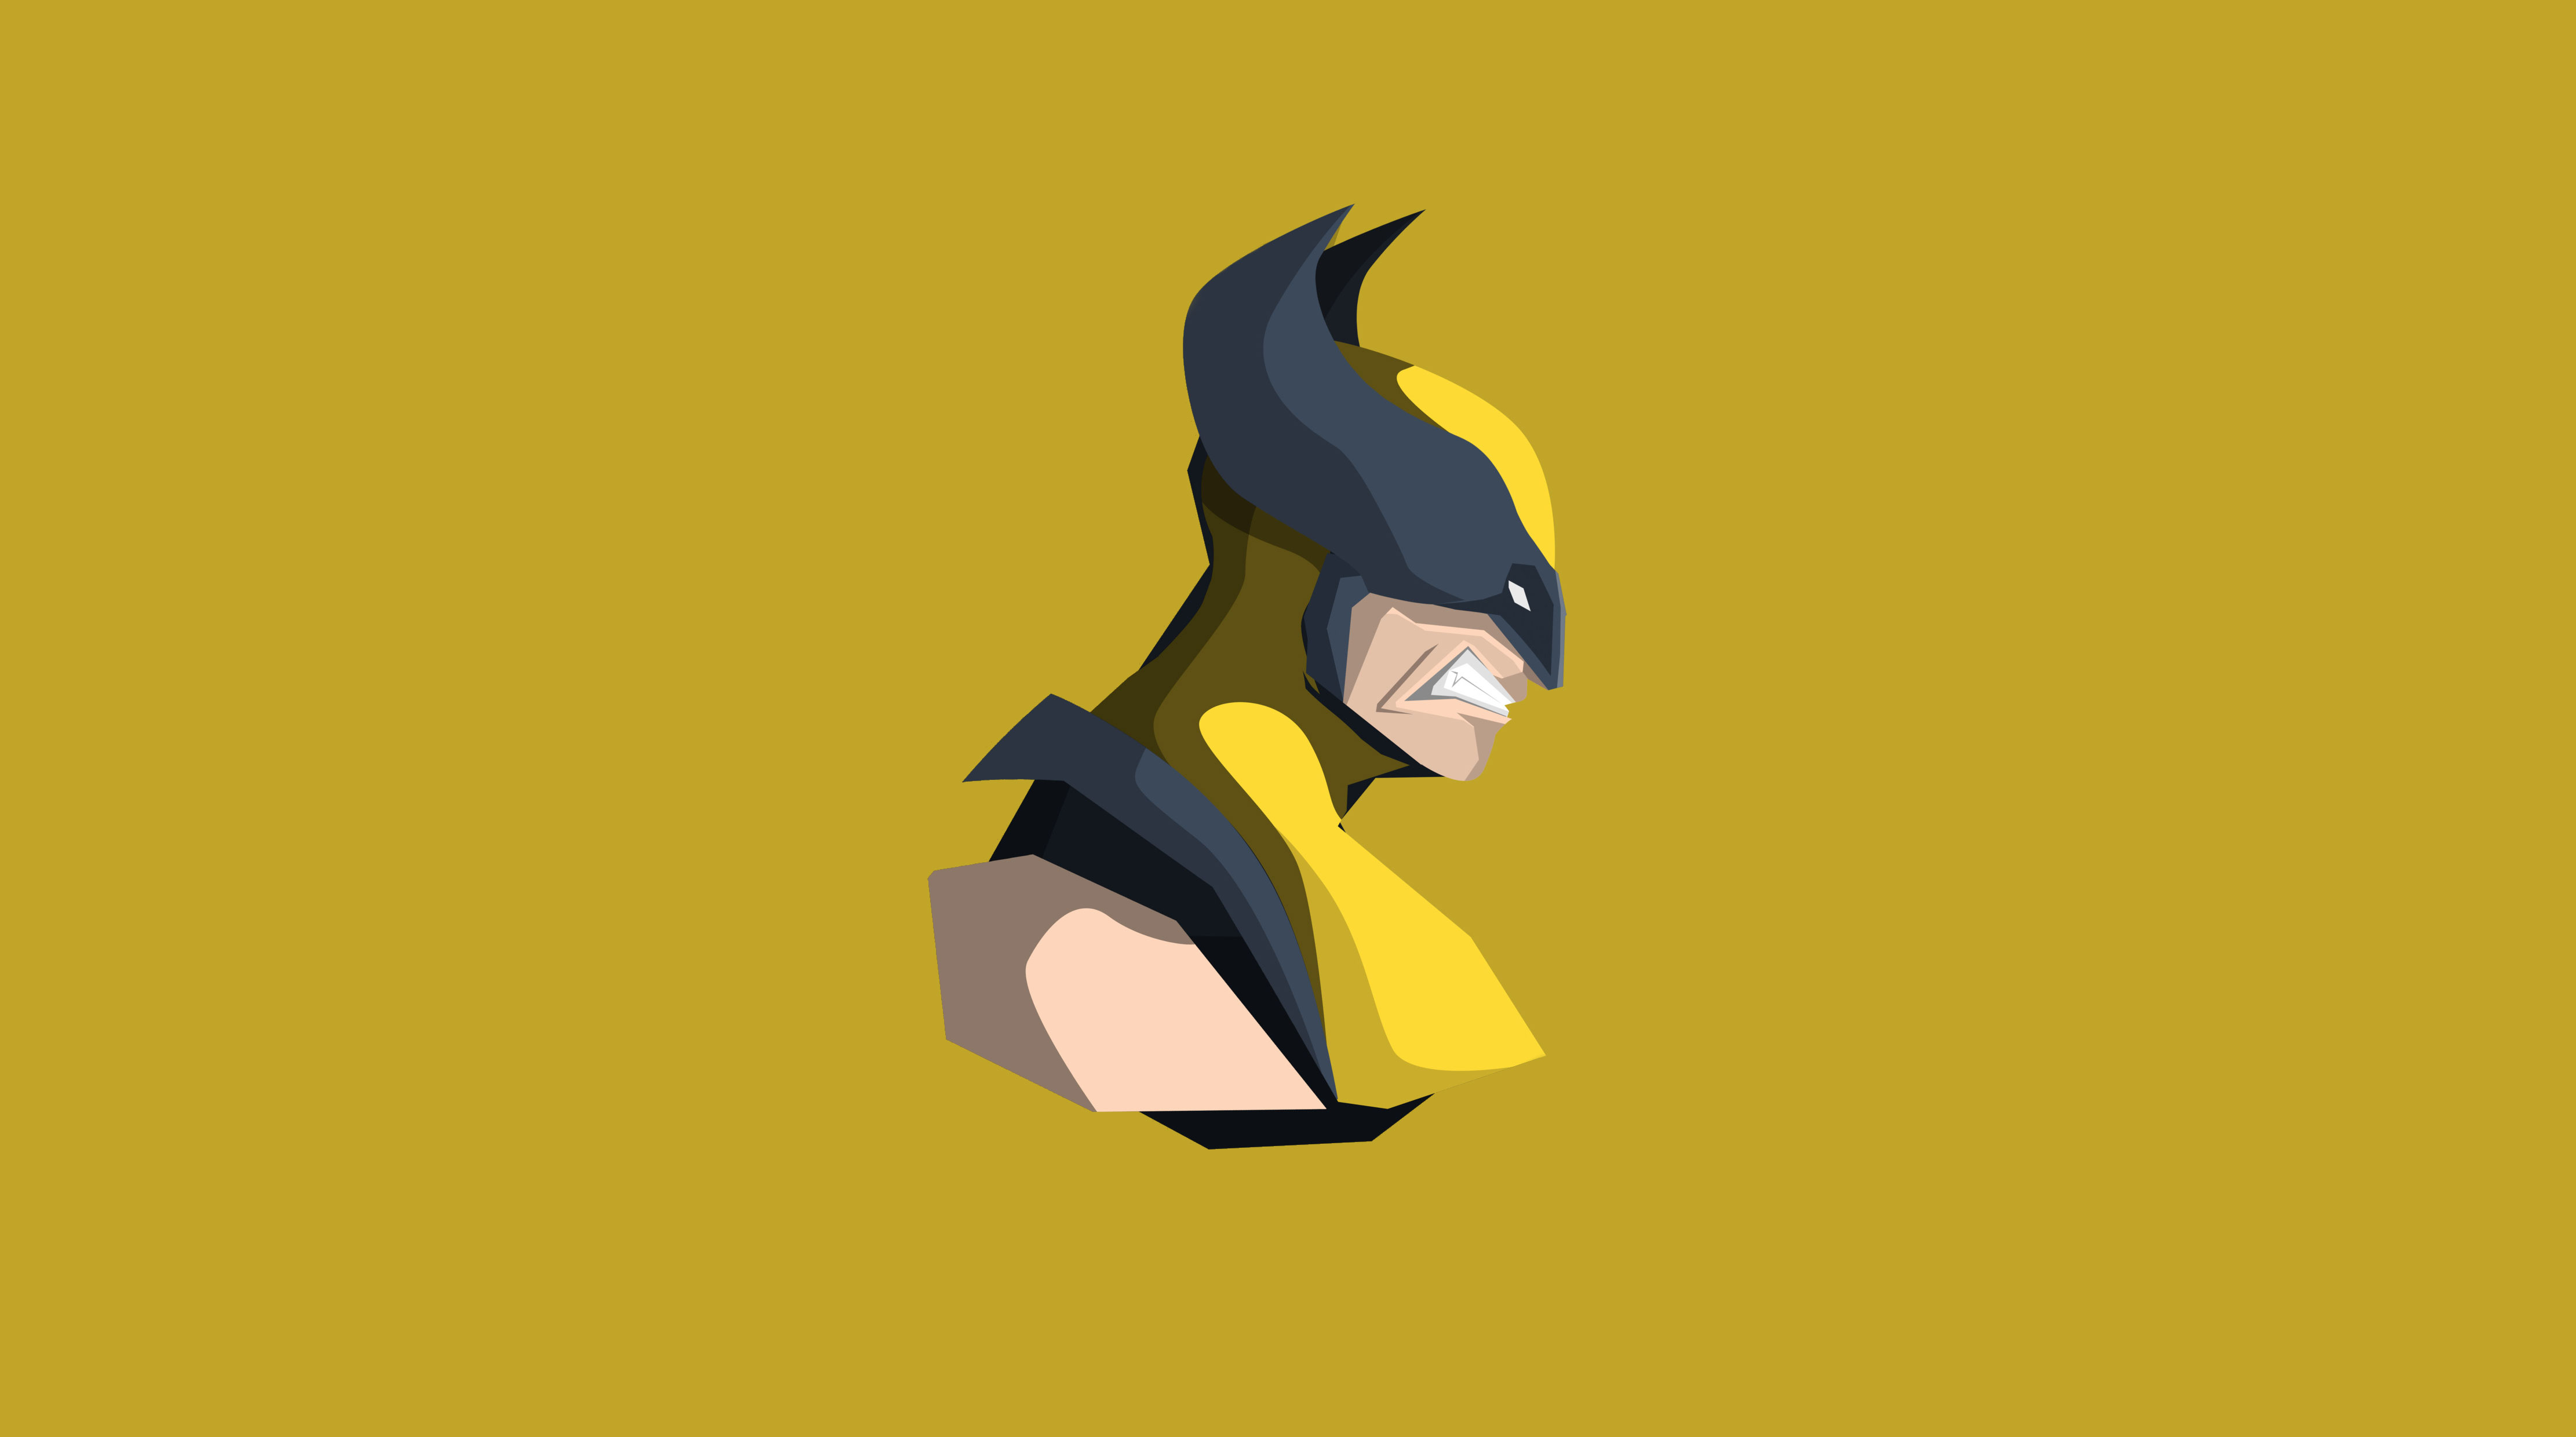 Wolverine minimalism 4k hd superheroes 4k wallpapers images backgrounds photos and pictures - Wallpaper wolverine 4k ...